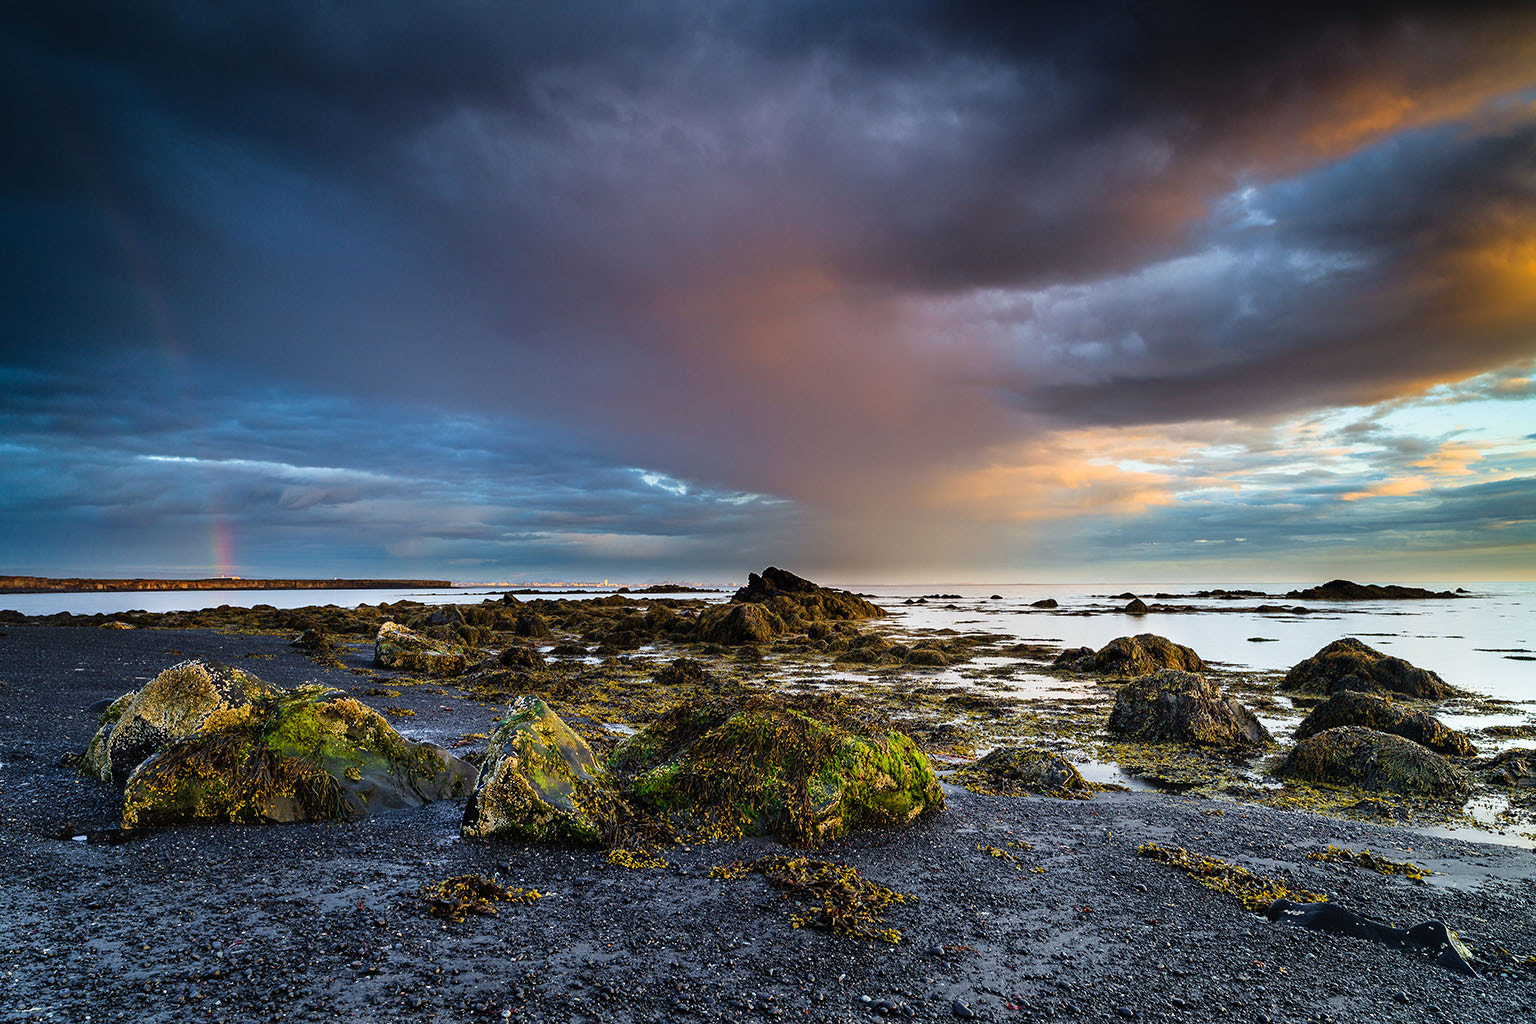 Photograph Between the showers by Páll Guðjónsson on 500px